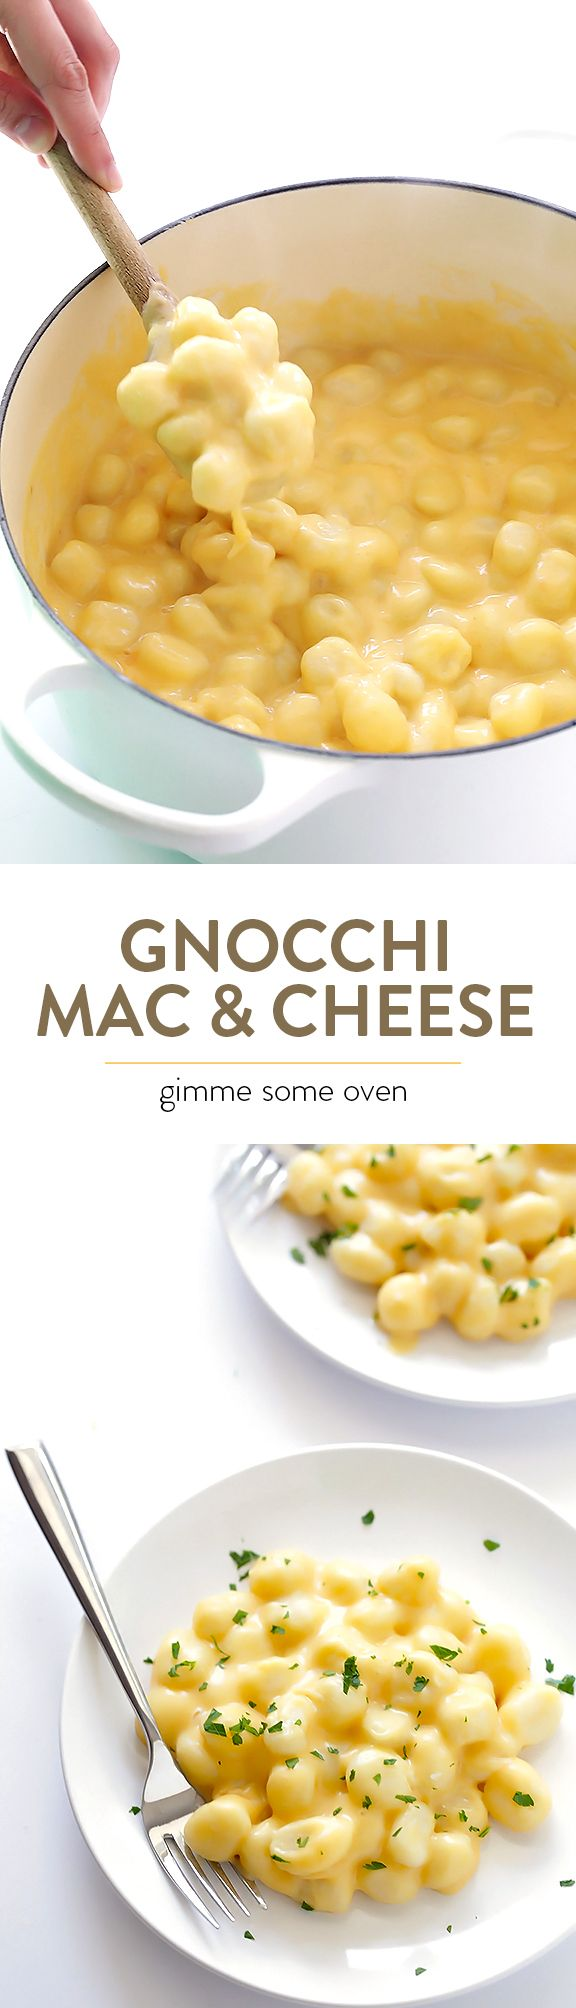 Swap out chewy and delicious gnocchi in place of noodles to make this super tasty mac and cheese! With GF gnocchi, it's also naturally gluten-free. | gimmesomeoven.com